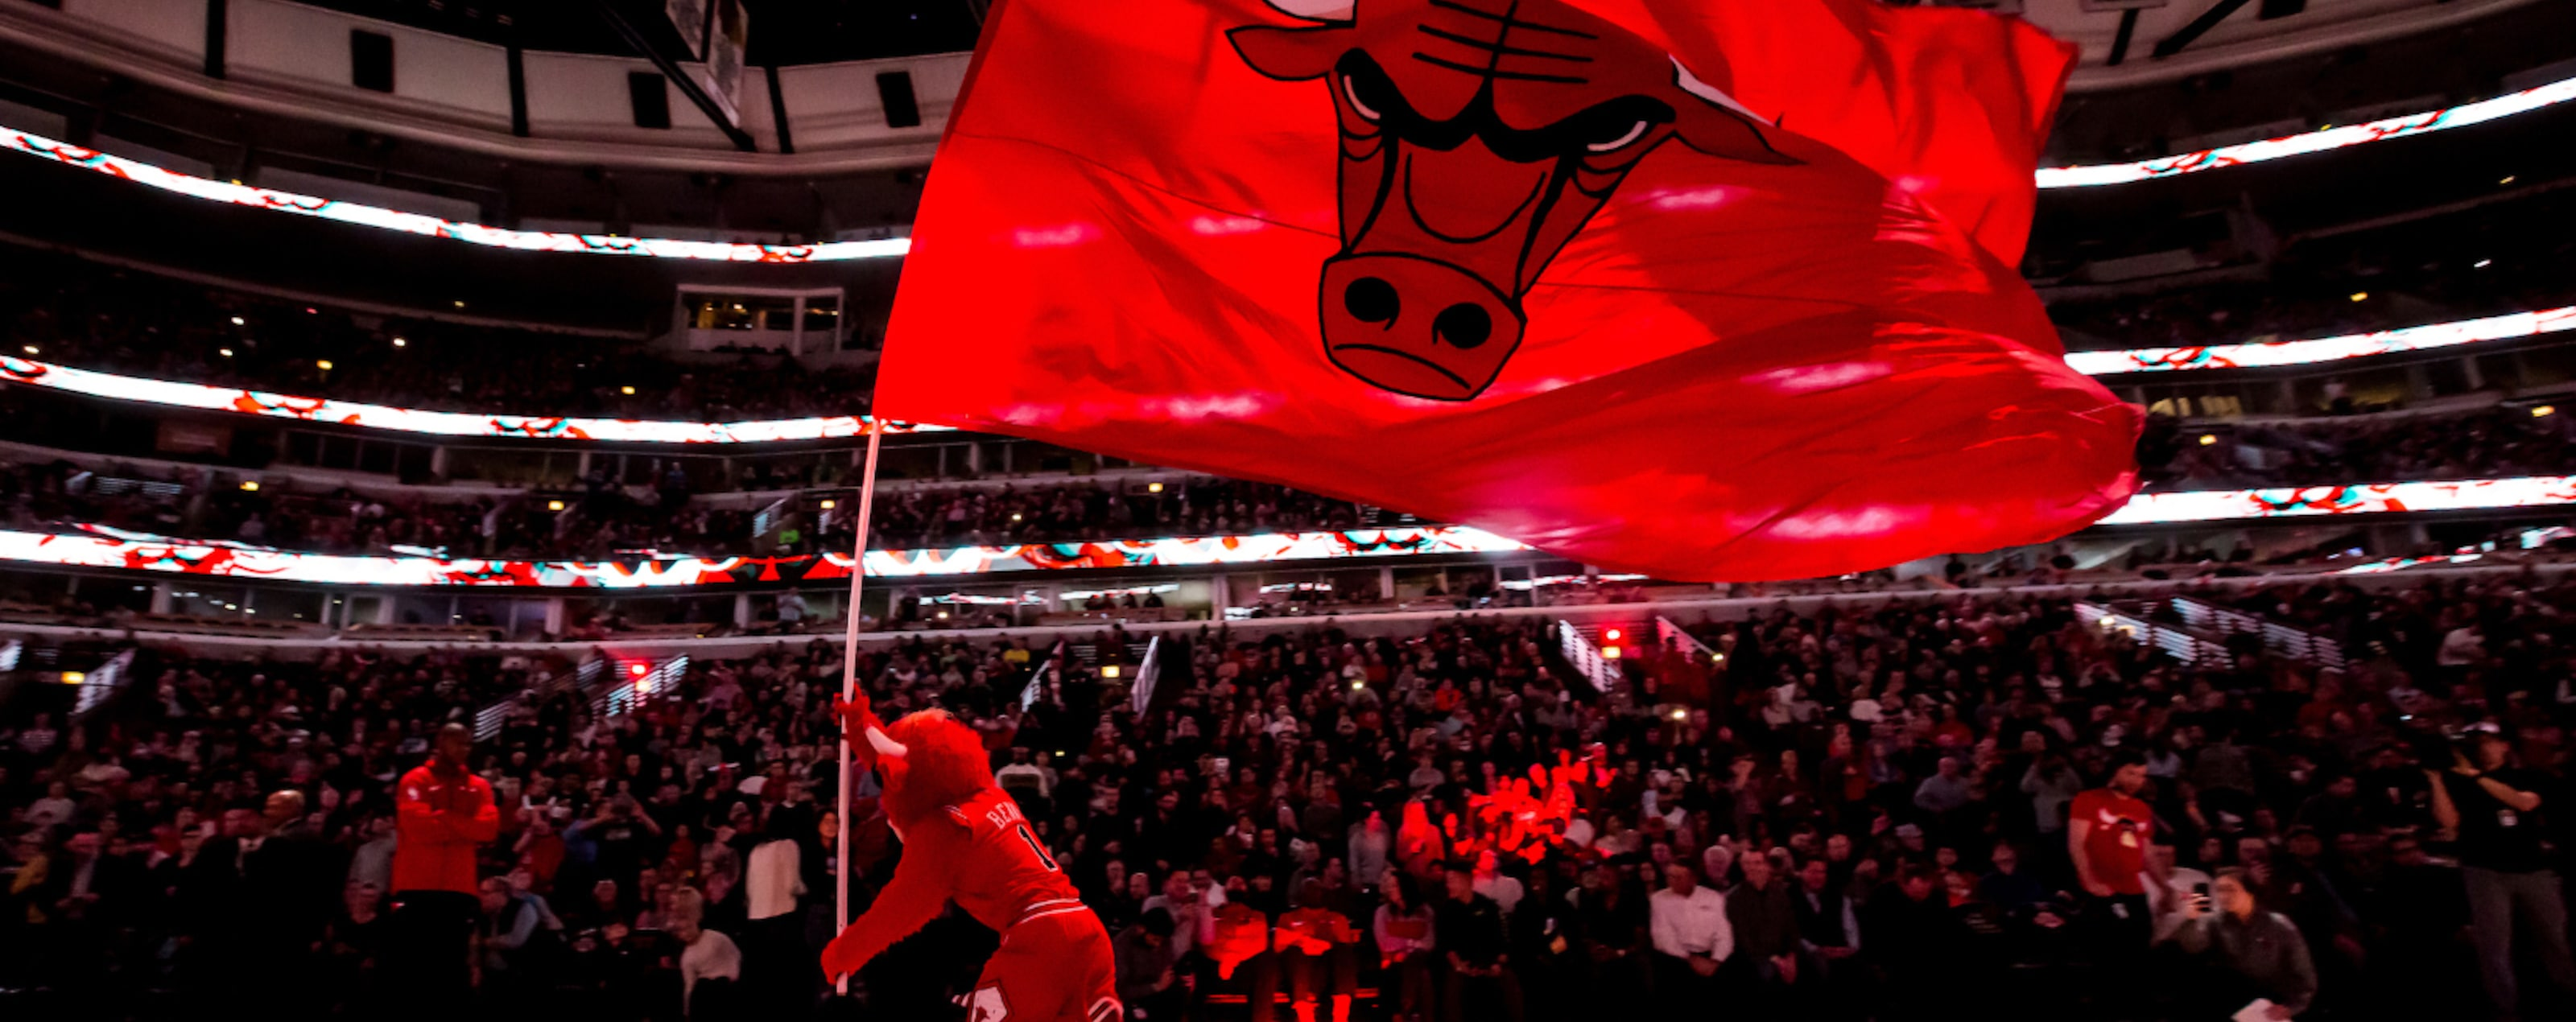 Benny waves the flag during a Bulls game